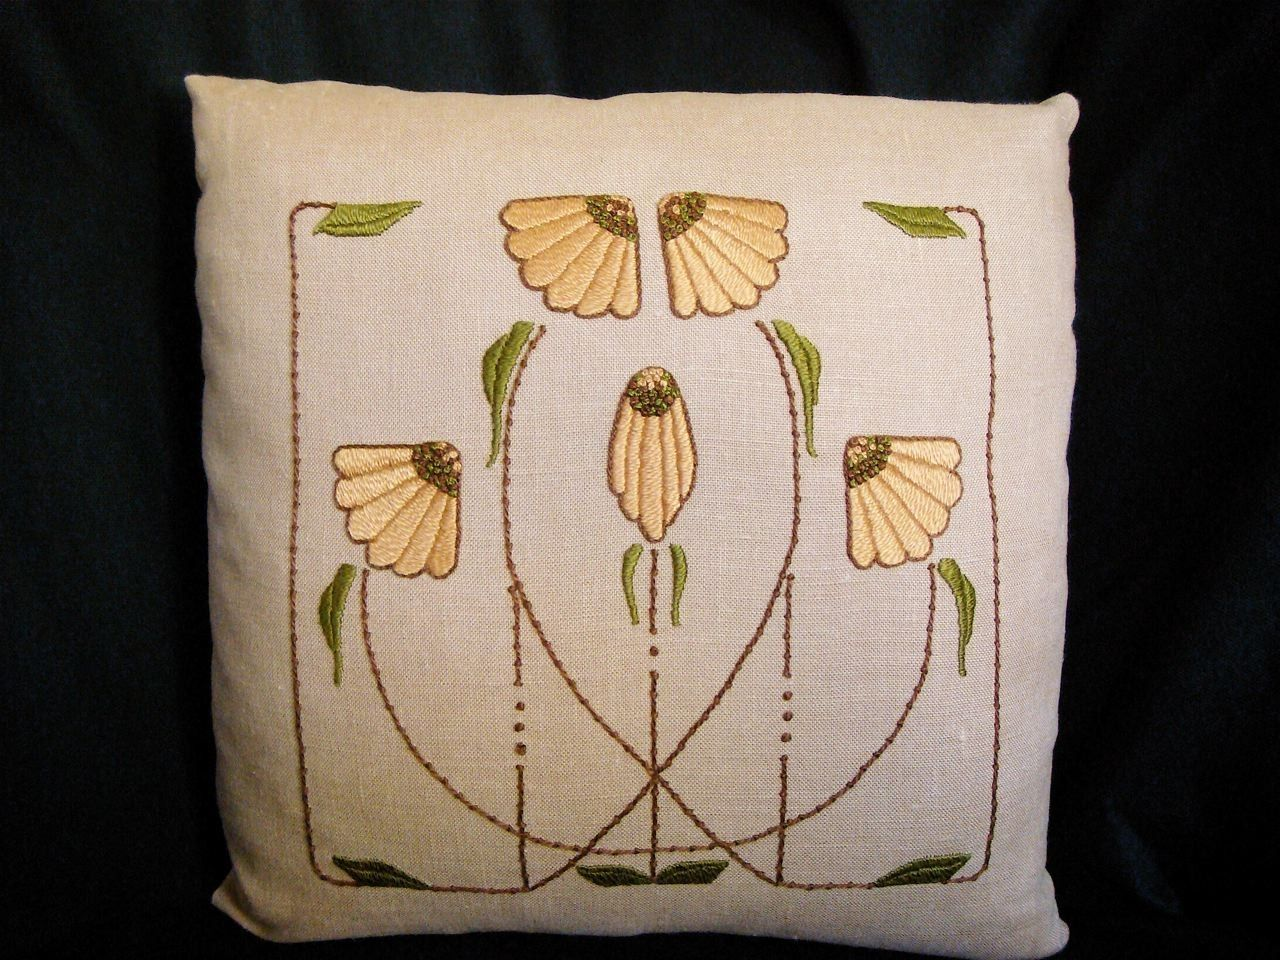 Arts and crafts pillows - Hand Embroidered Silk Arts And Crafts Craftsman Style Carrie Garden Pillow